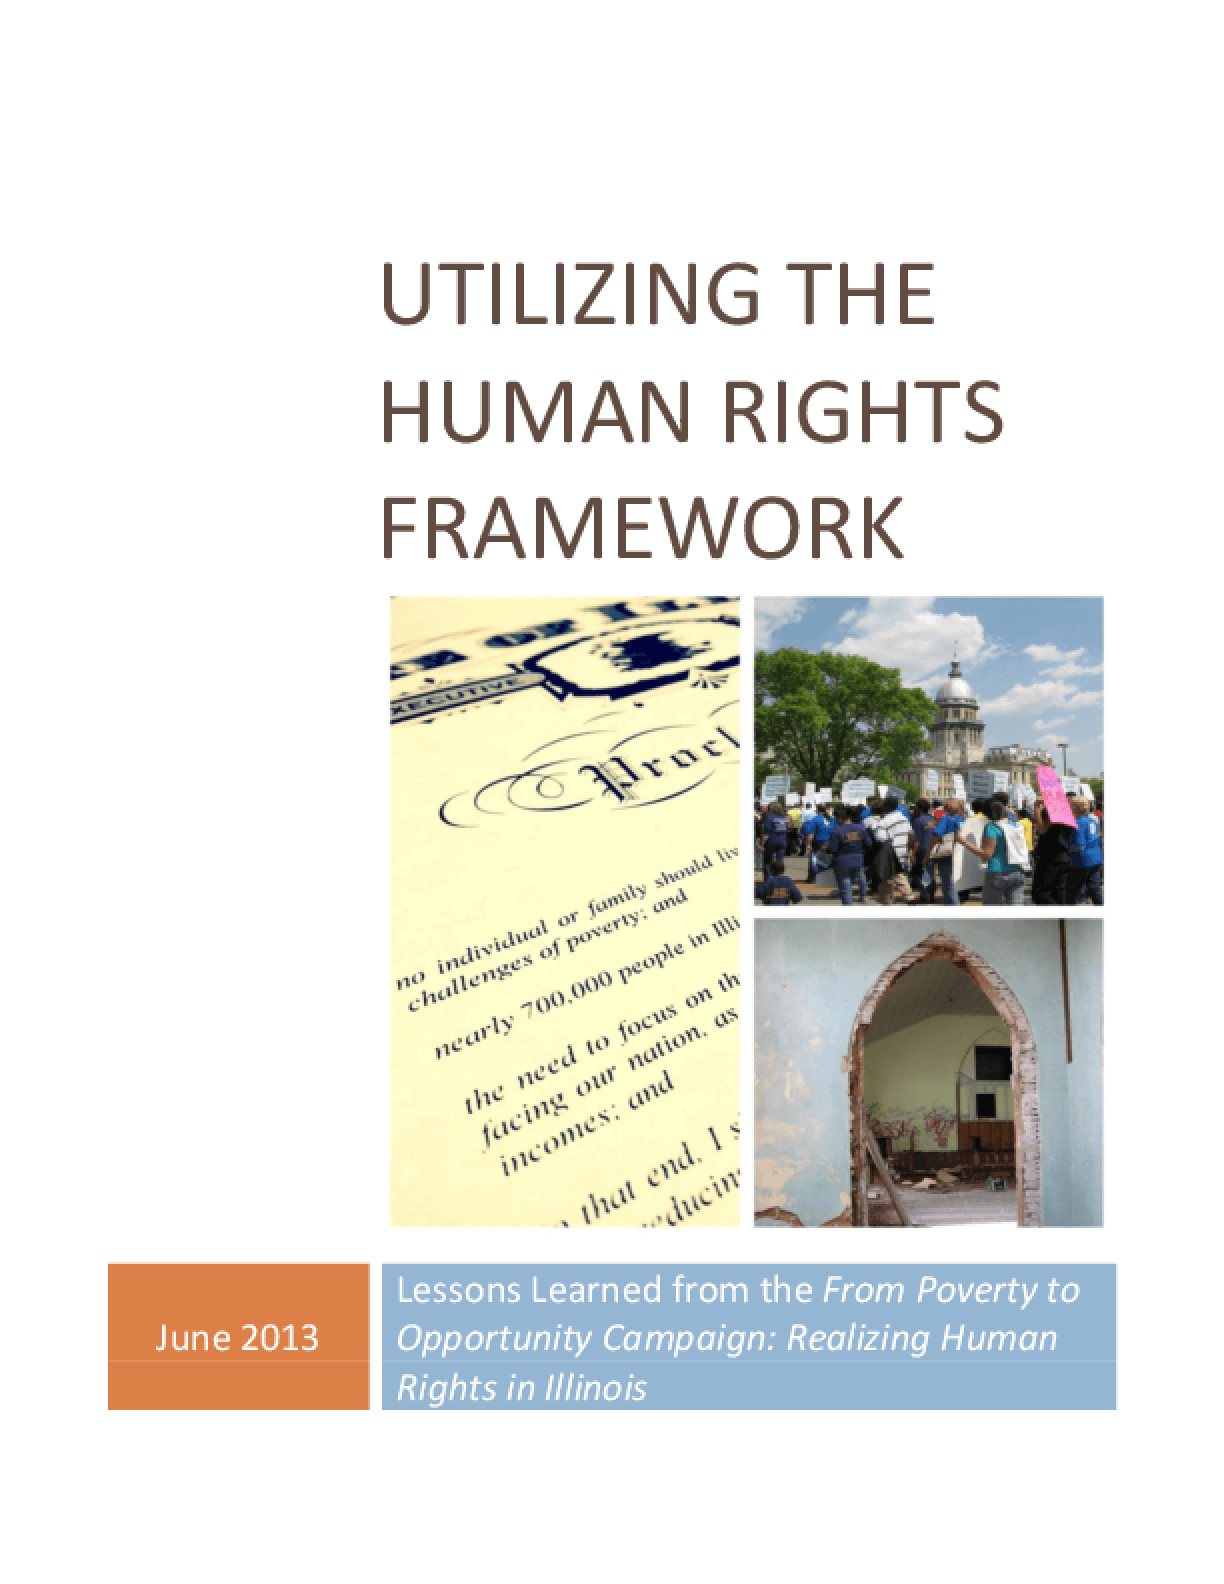 Utilizing the Human Rights Framework: Lessons Learned from the From Poverty to Opportunity Campaign: Realizing Human Rights in Illinois